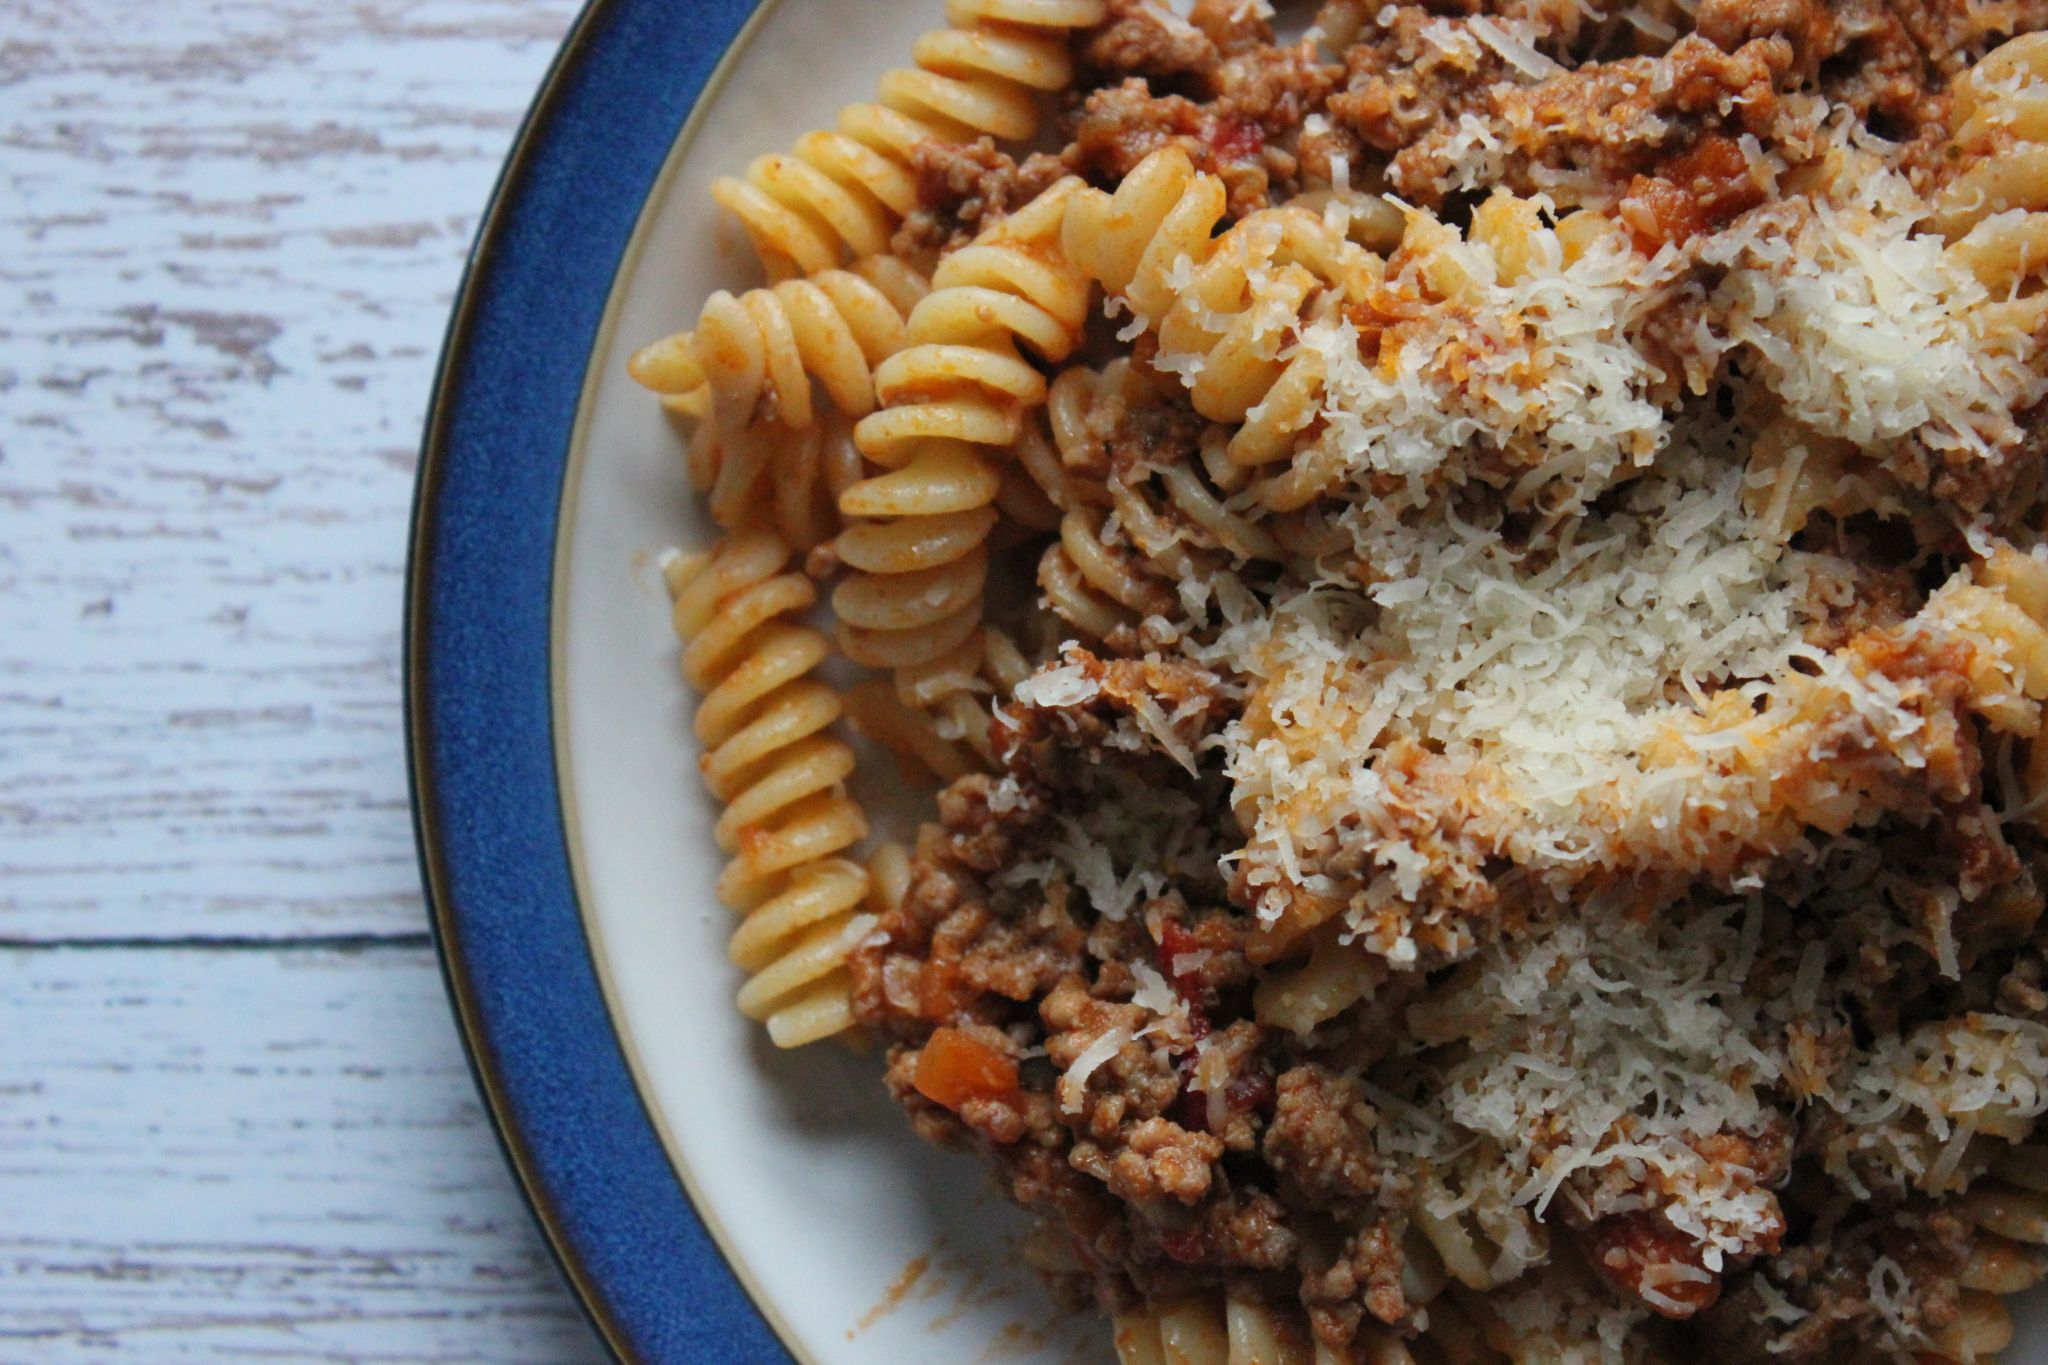 A plate of pasta with ragu